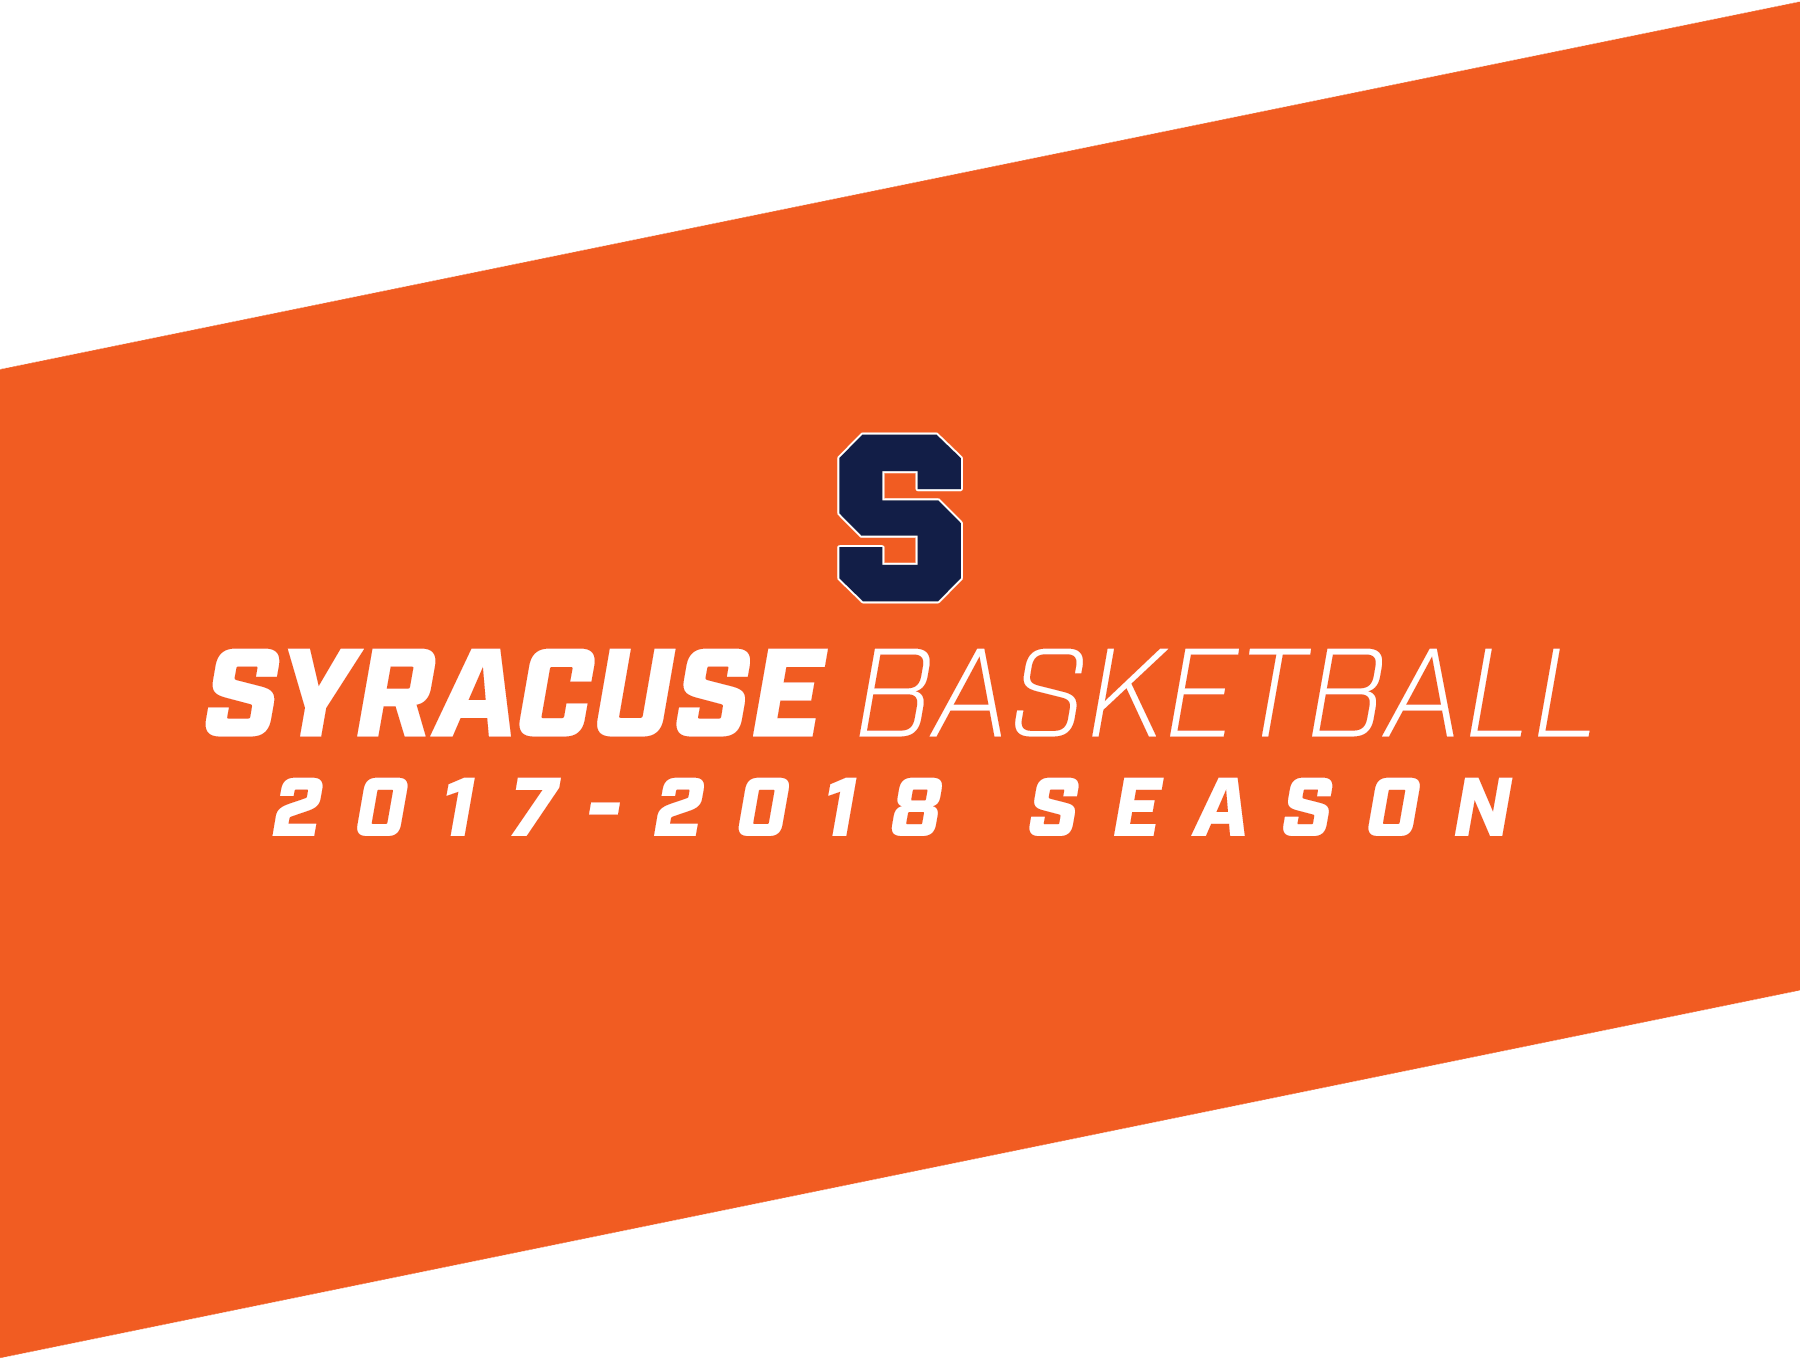 Syracuse Basketball 2017 2018 On Behance